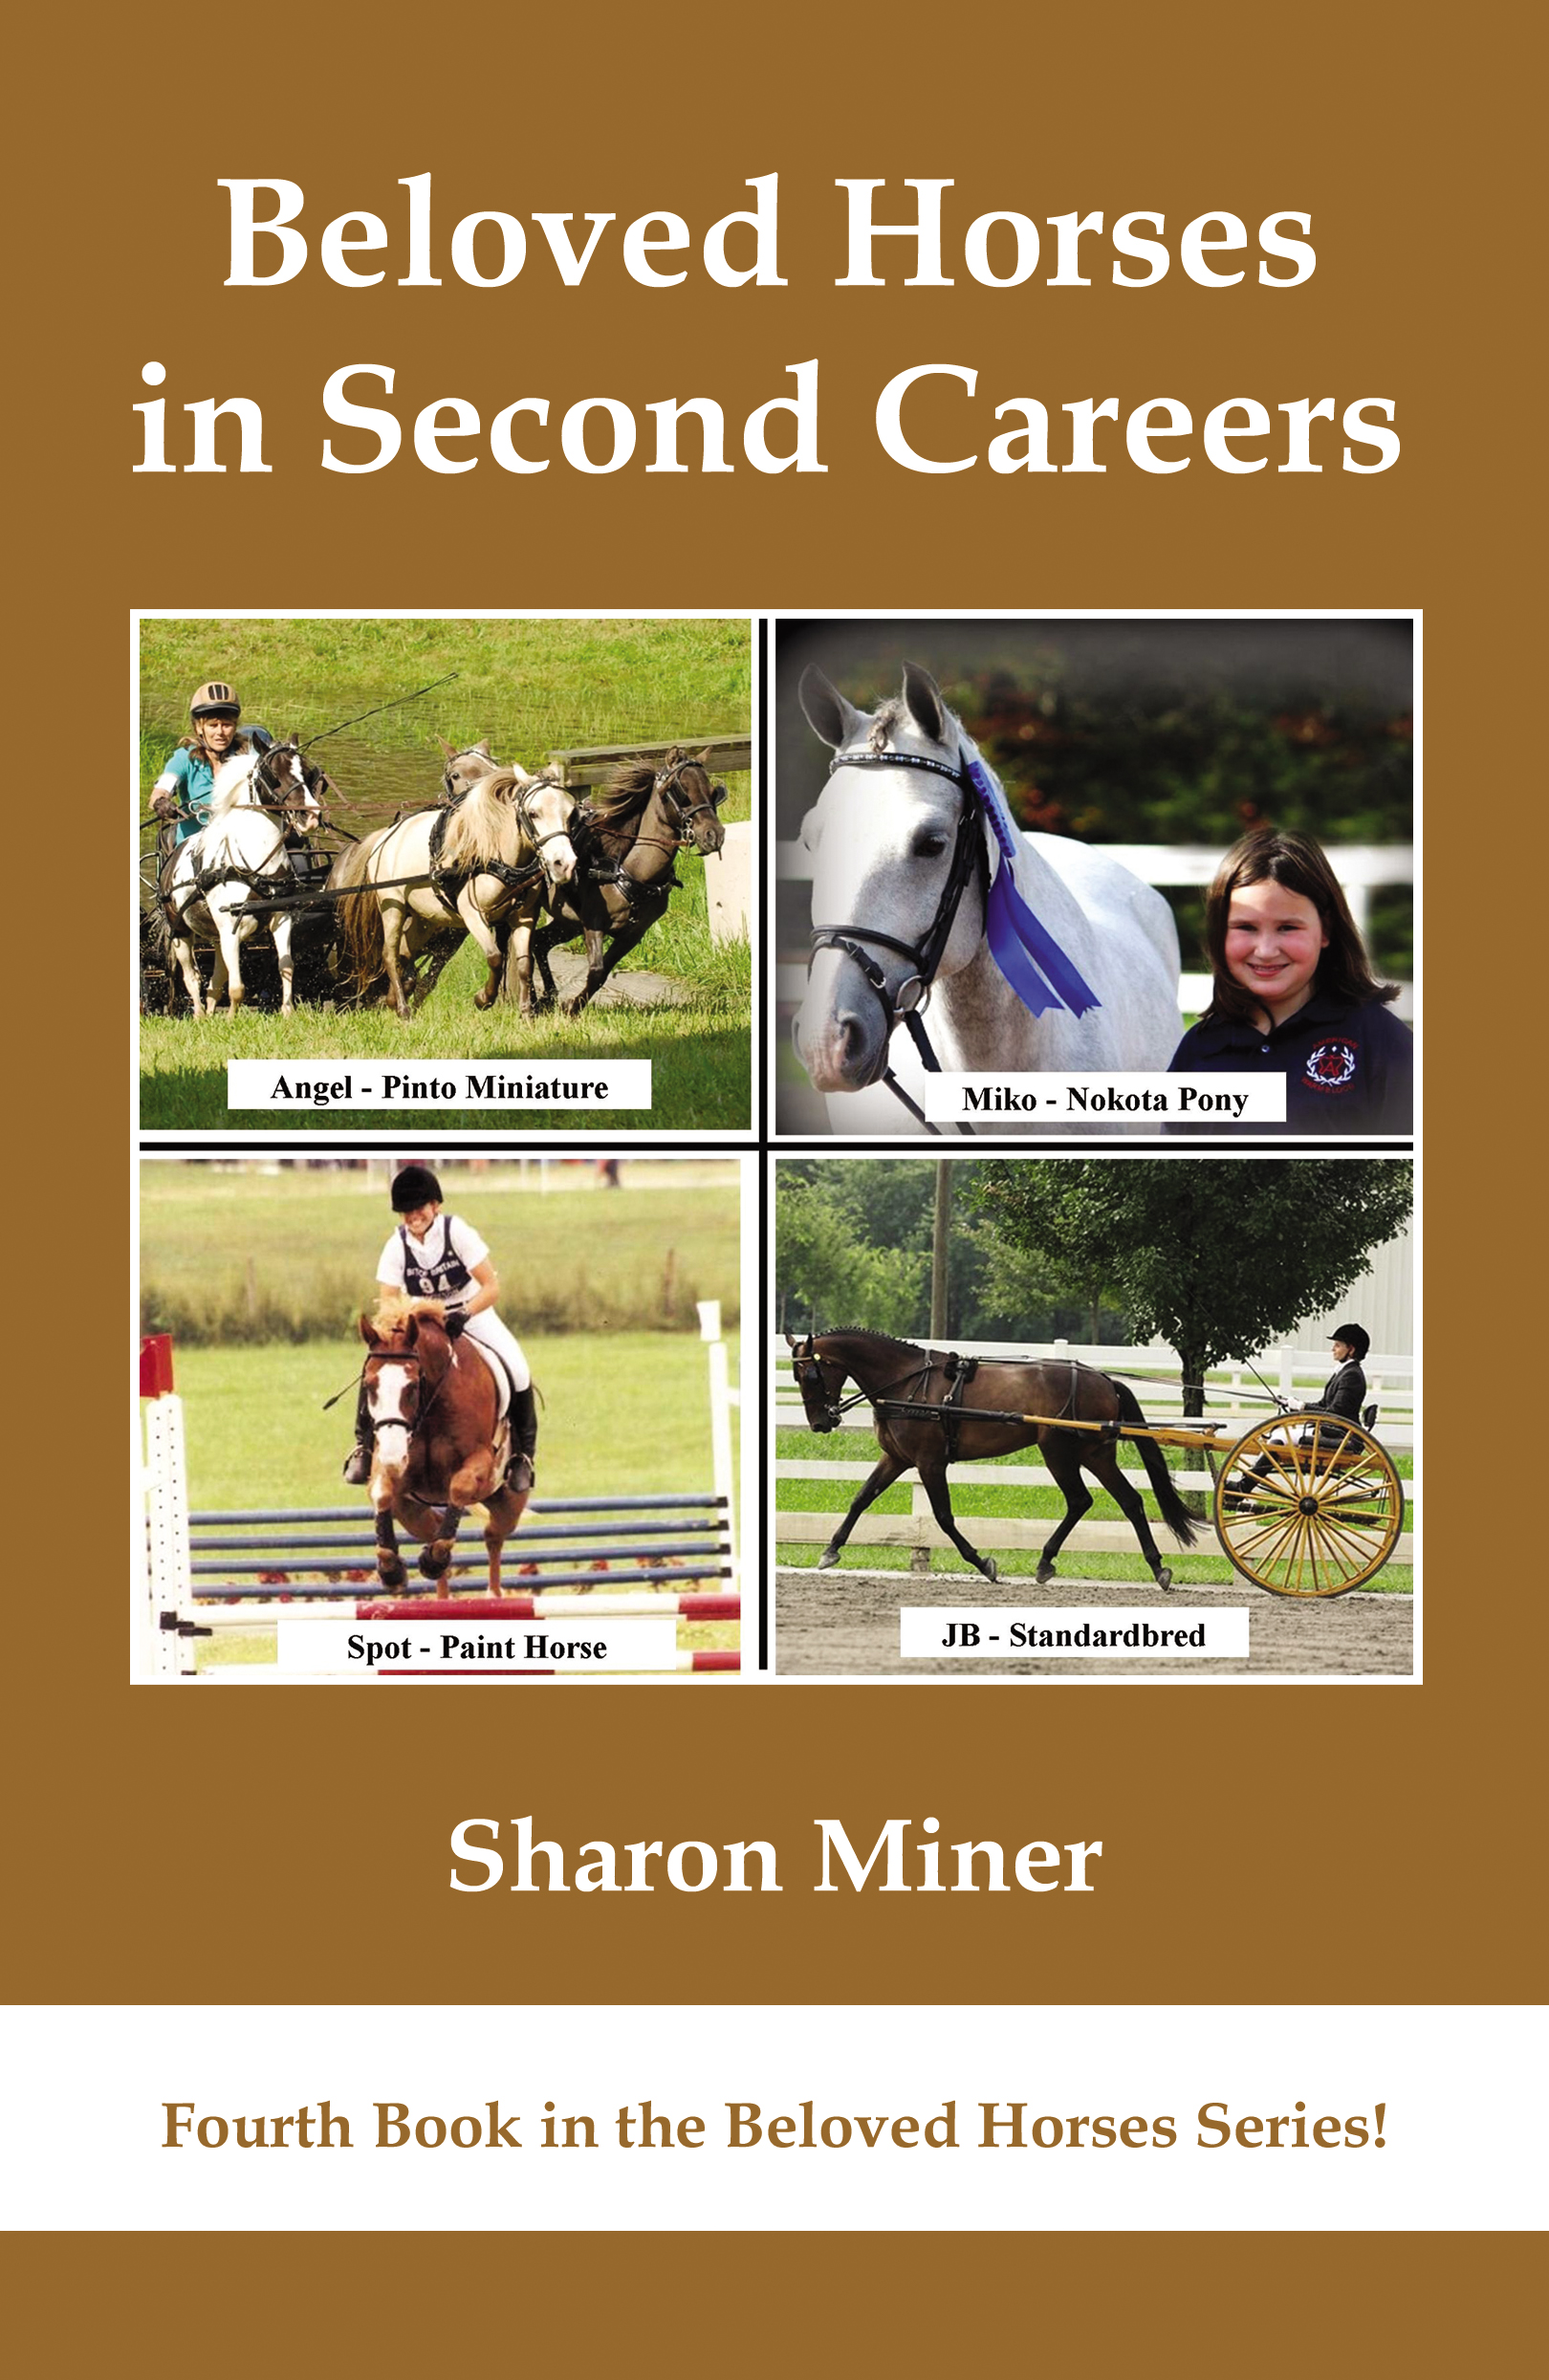 Benny's story is featured in this 4th edition - Benny is a Beloved Horse series star